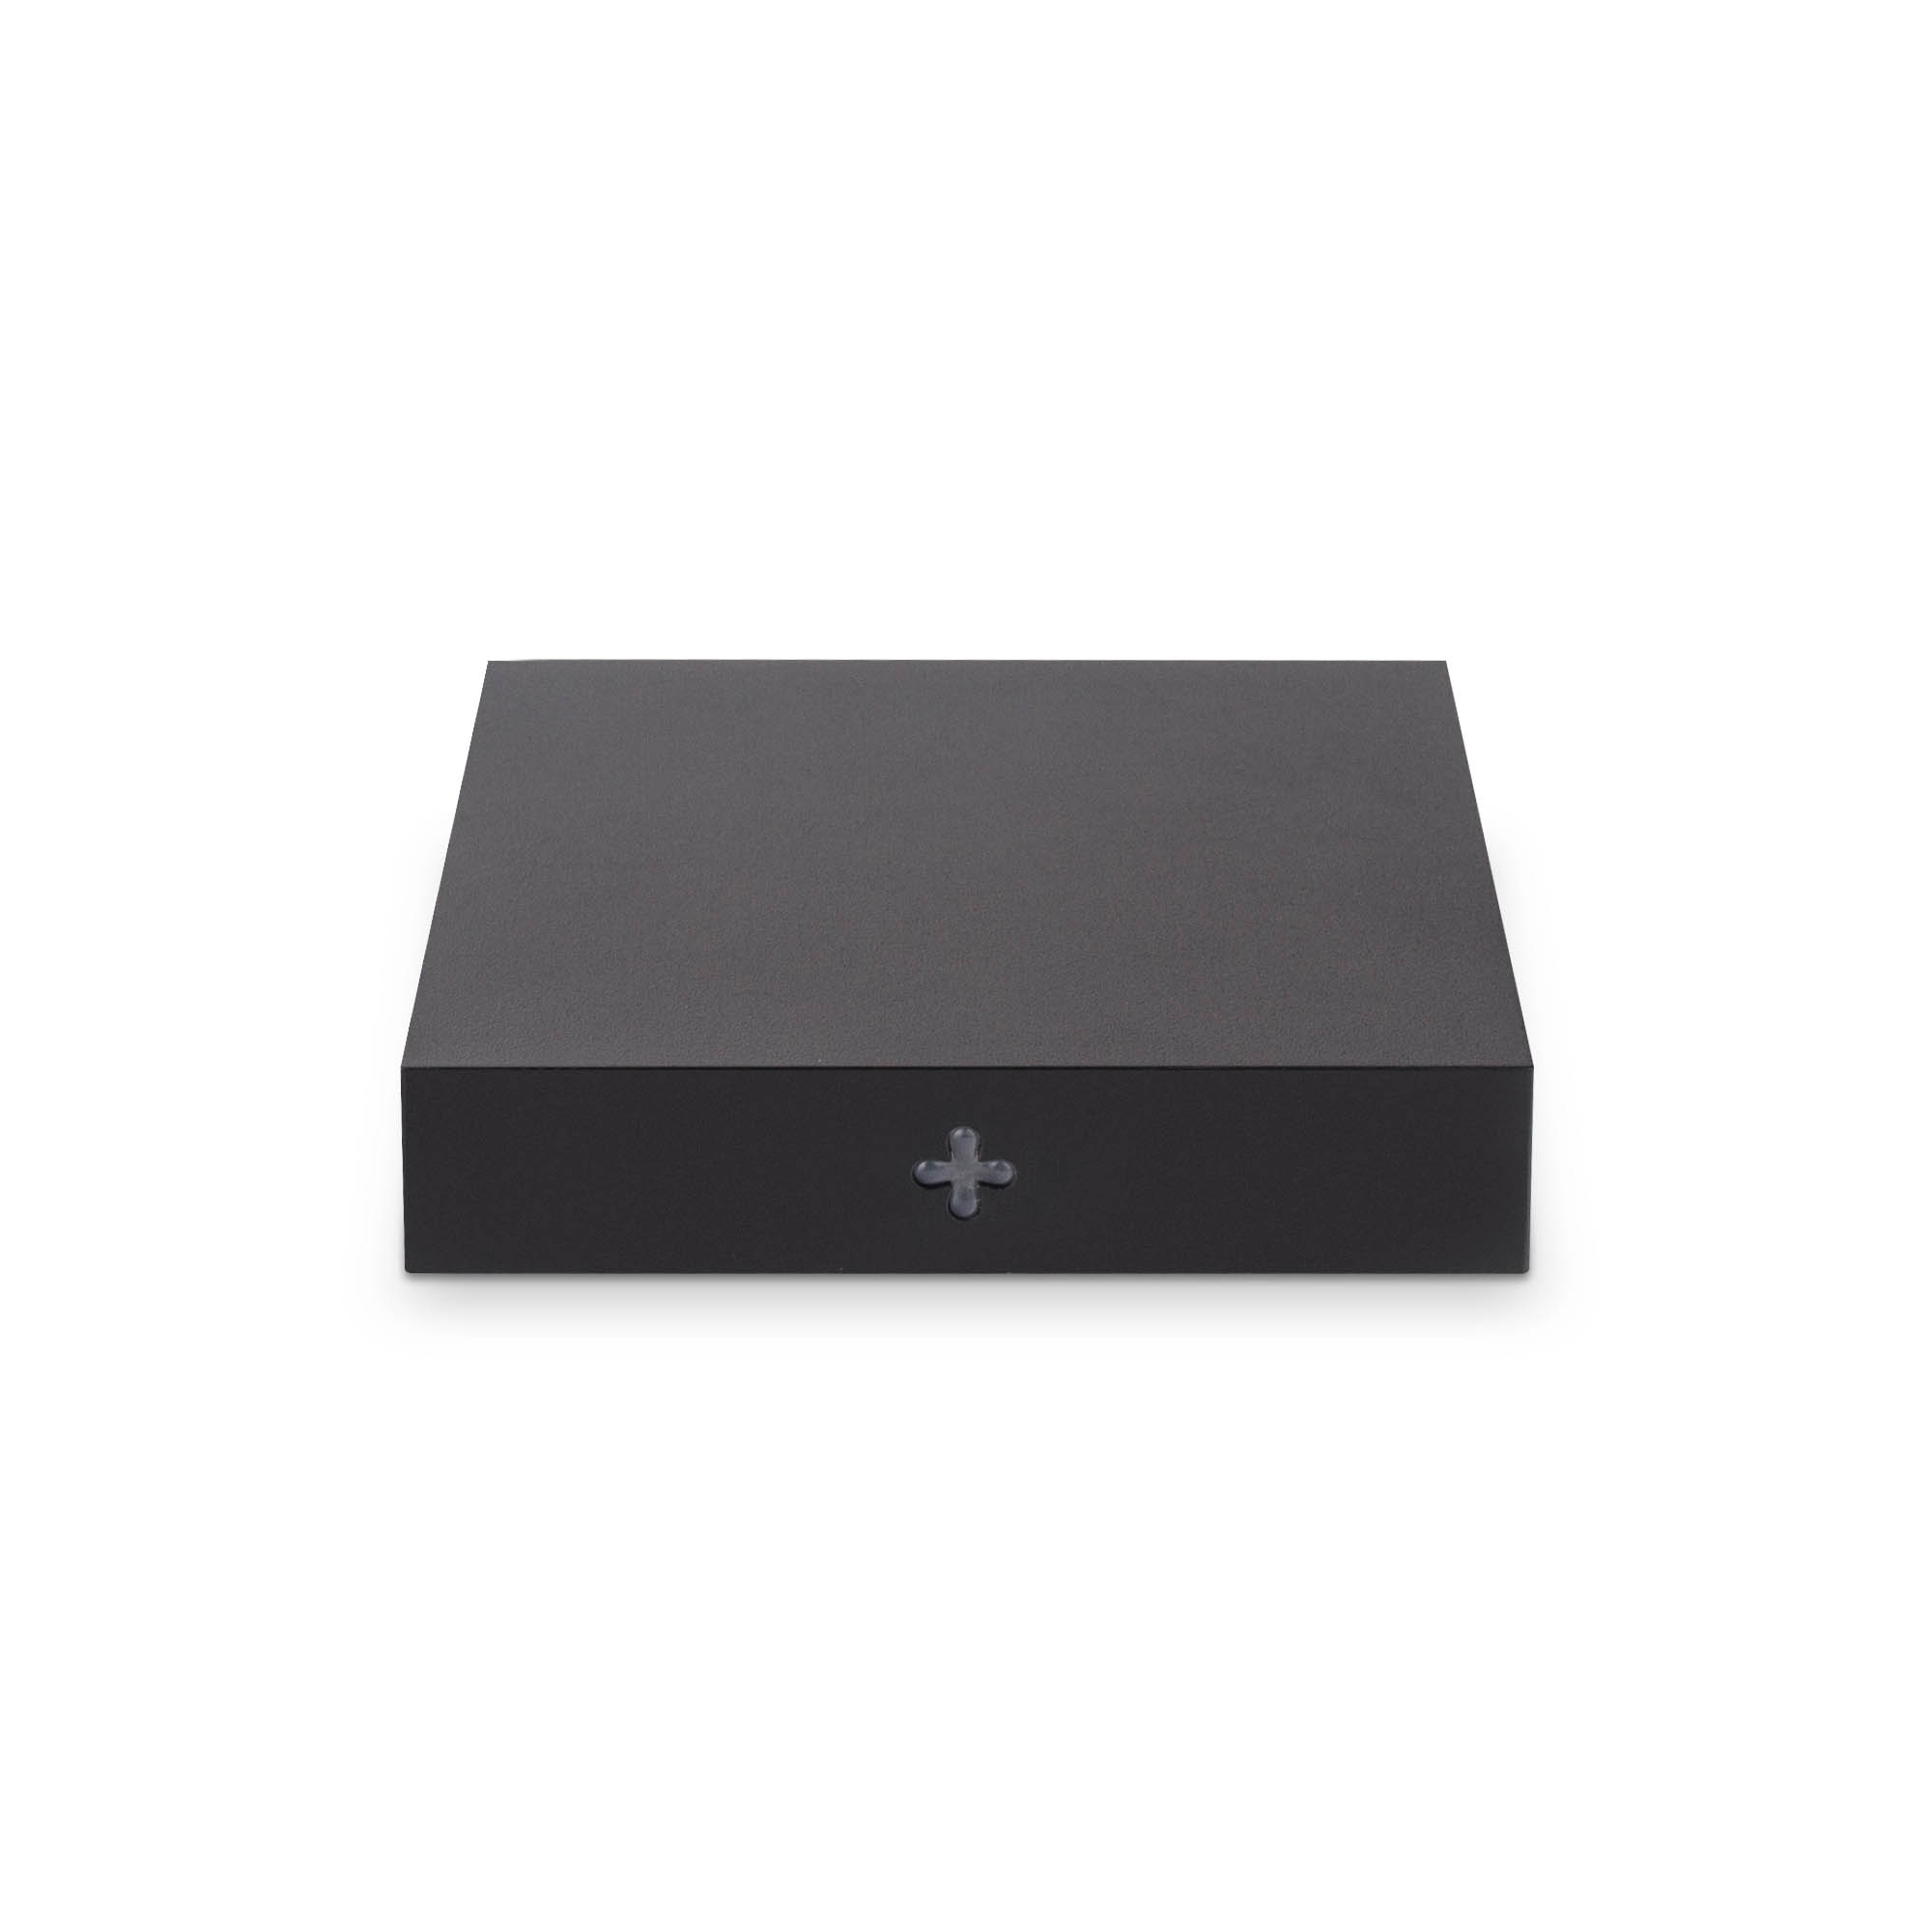 Rombica Smart Box v008